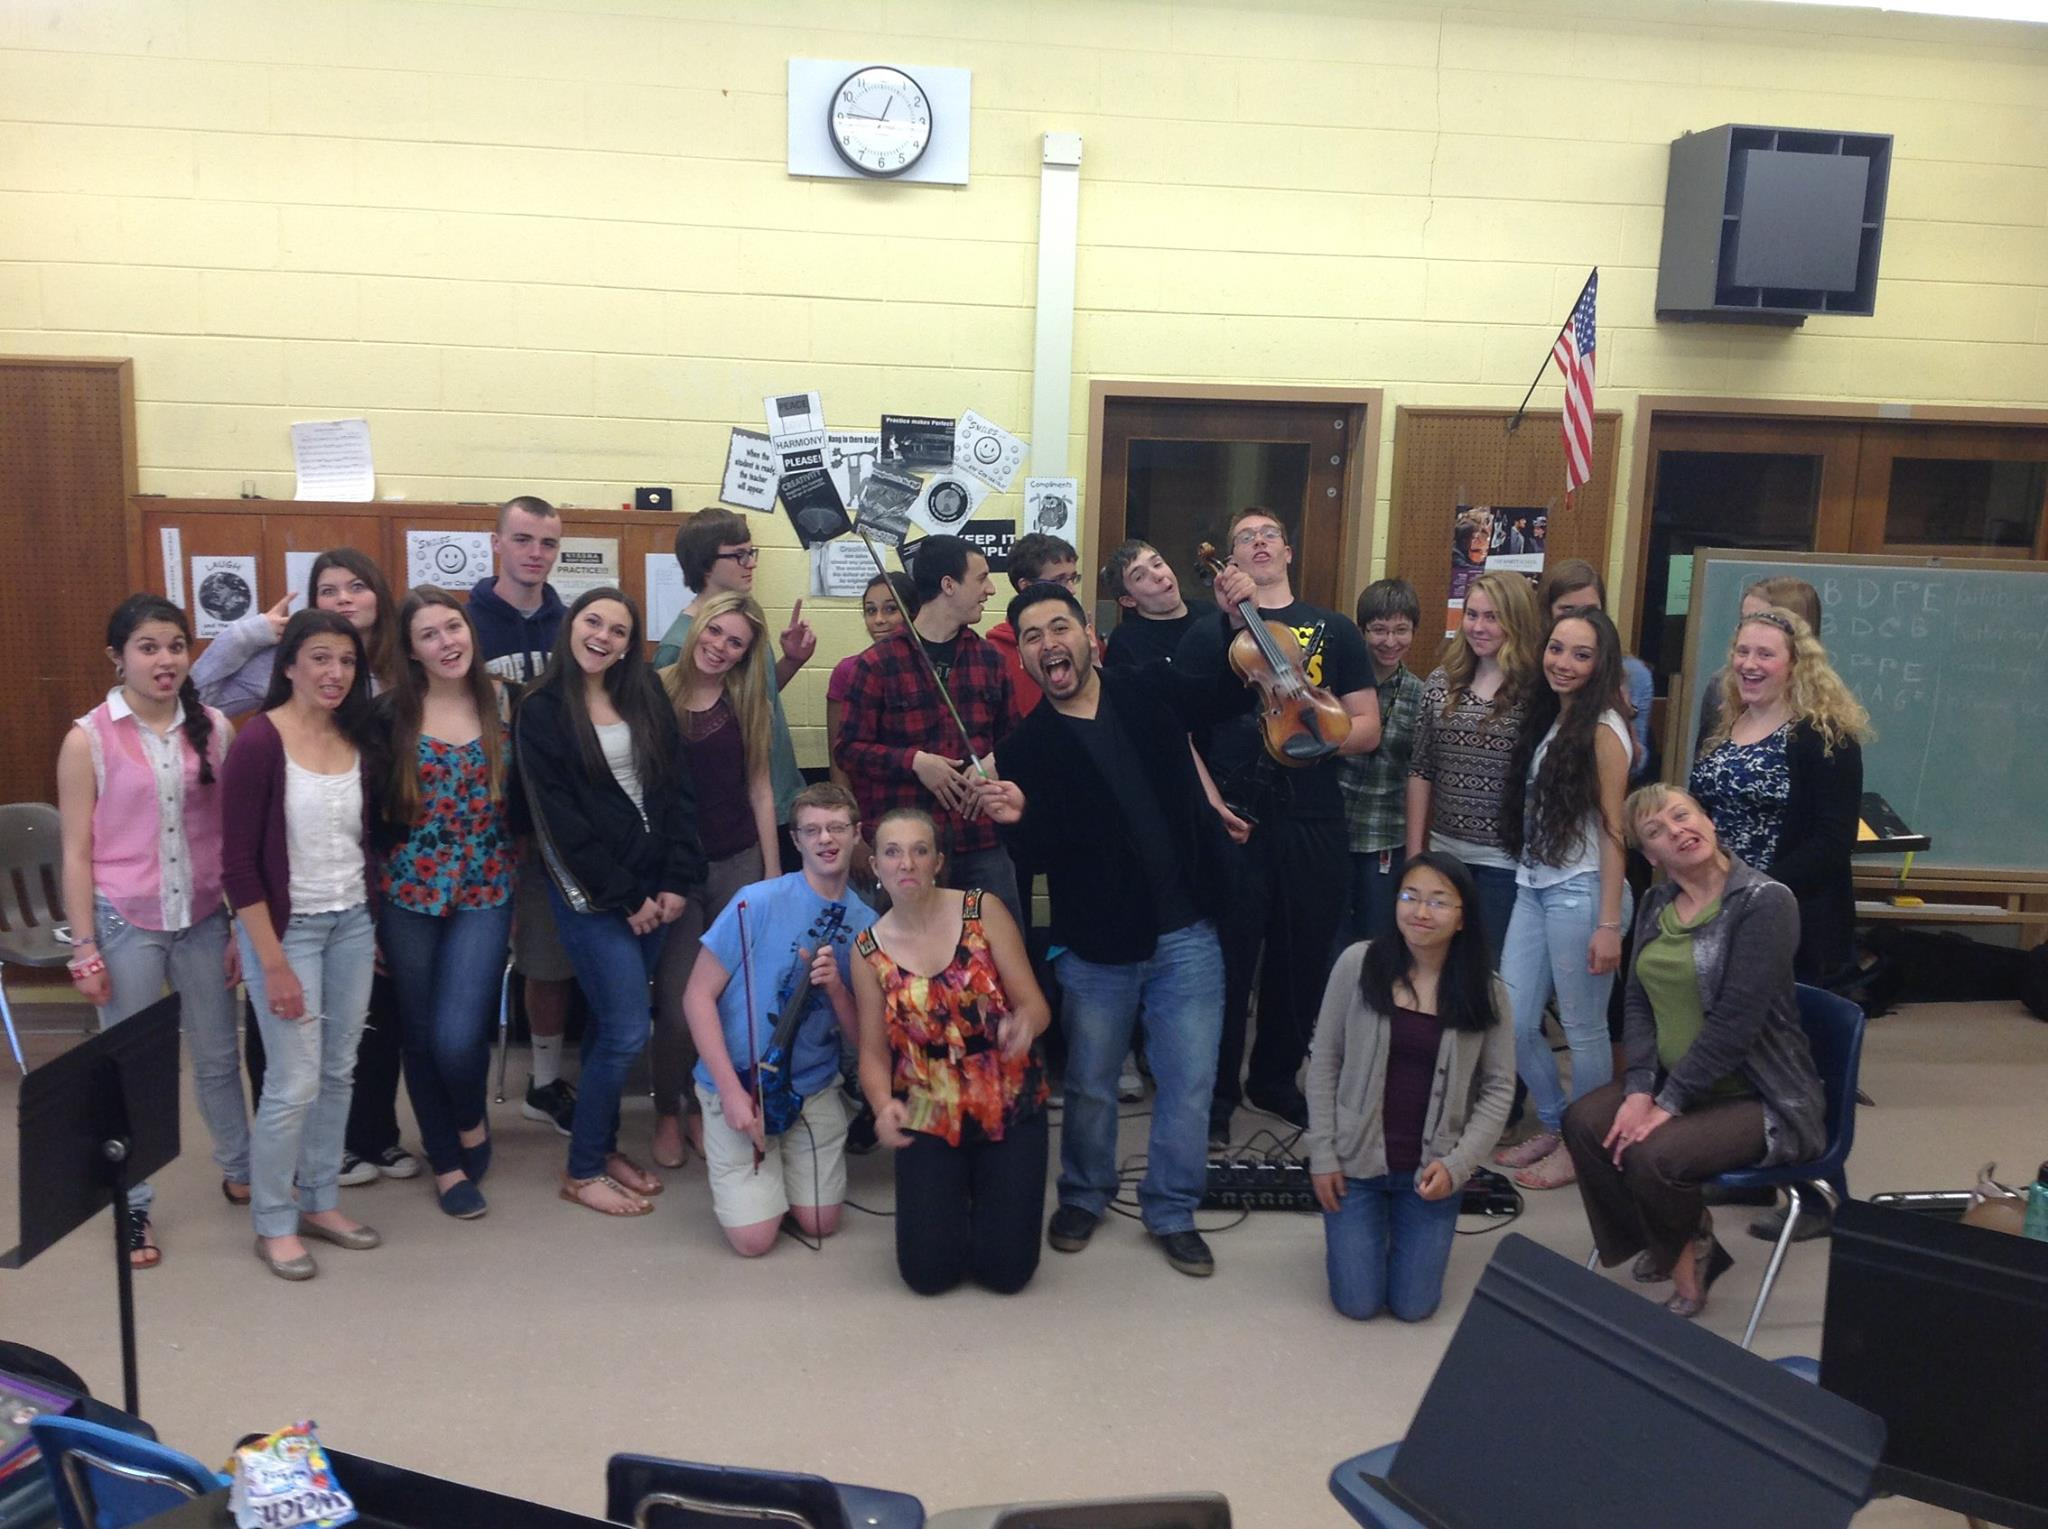 A funny group photo with Sachem North HS